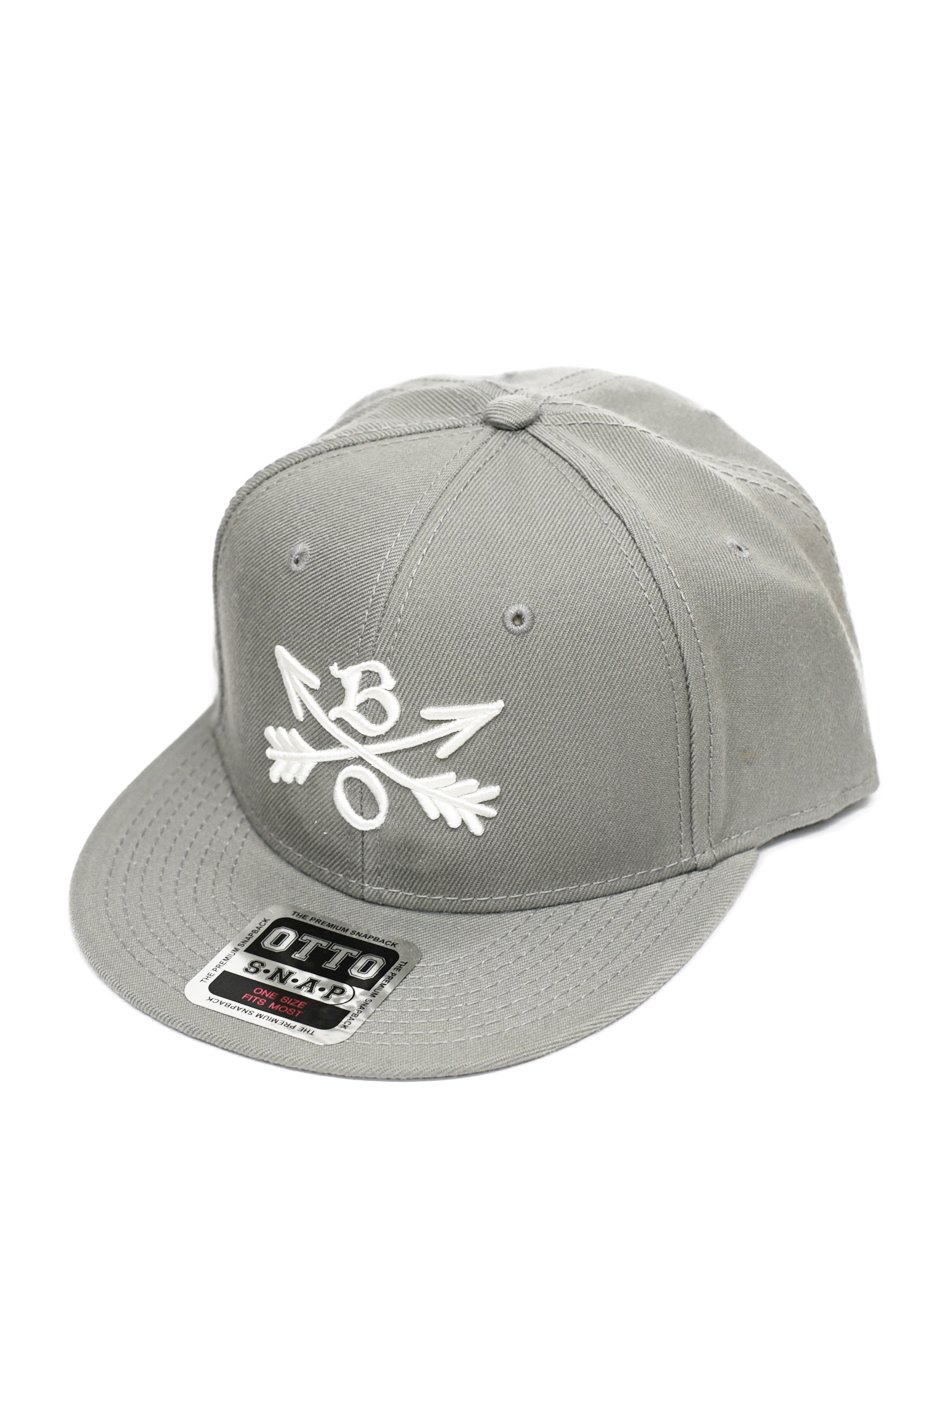 再入荷!Burnout(バーンアウト)Crossed Arrows Cap / 3D Embroidery / グレー<img class='new_mark_img2' src='https://img.shop-pro.jp/img/new/icons59.gif' style='border:none;display:inline;margin:0px;padding:0px;width:auto;' />